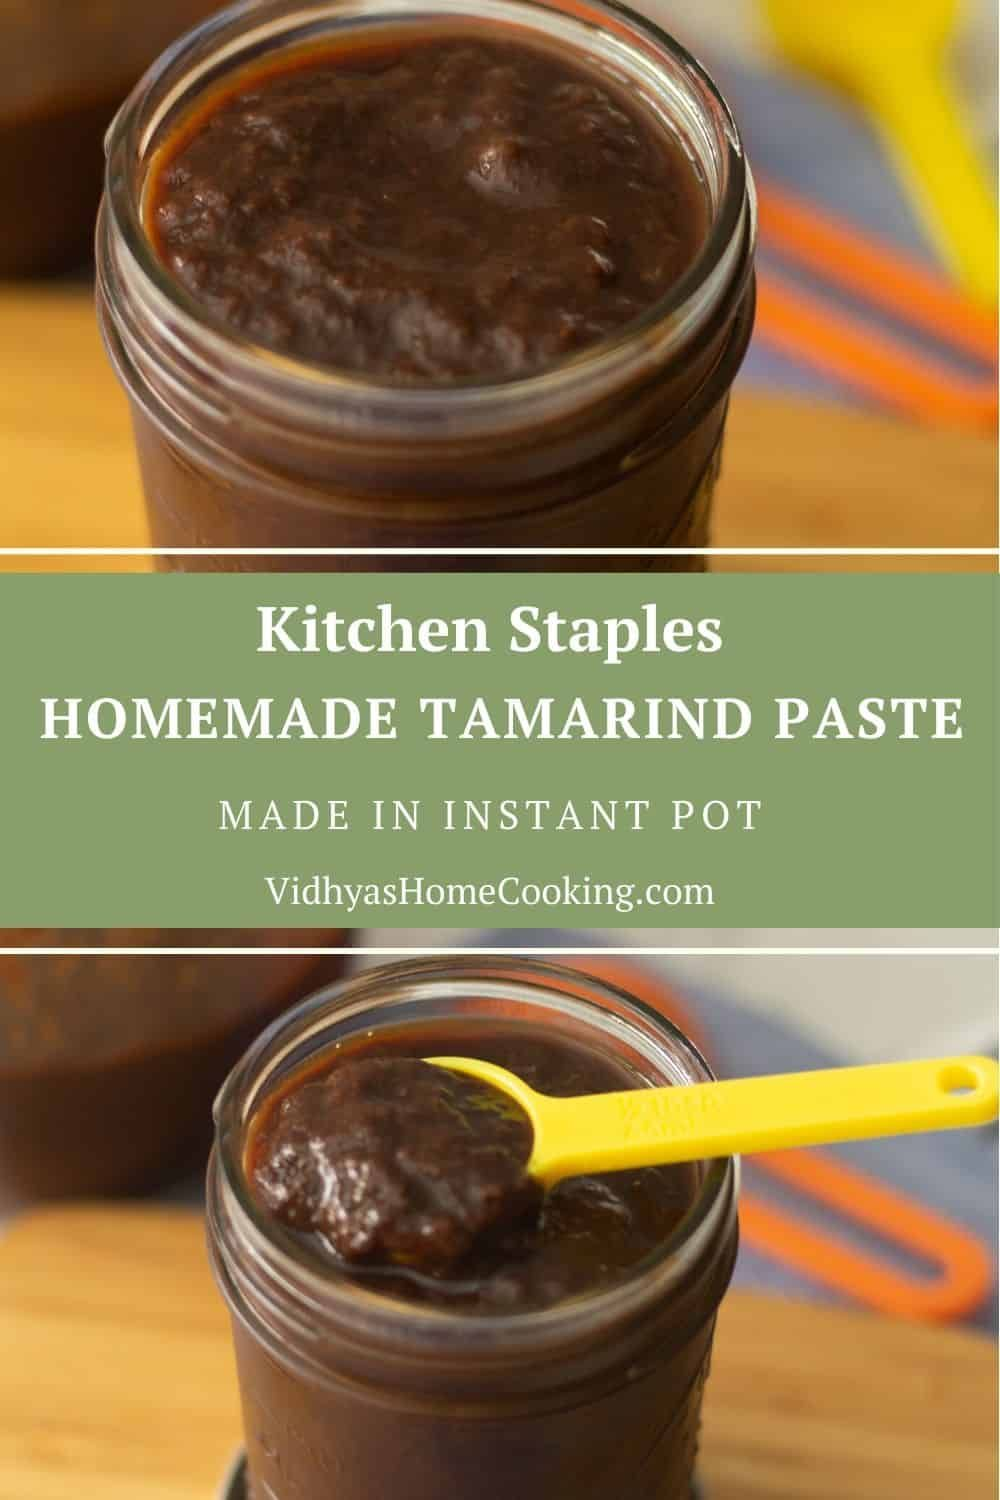 Learn How To Make Tamarind Paste The Quintessential Ingredient Of The South Indian Cuisine In Bulk In 2020 Tamarind Paste Best Vegetarian Recipes South Indian Cuisine